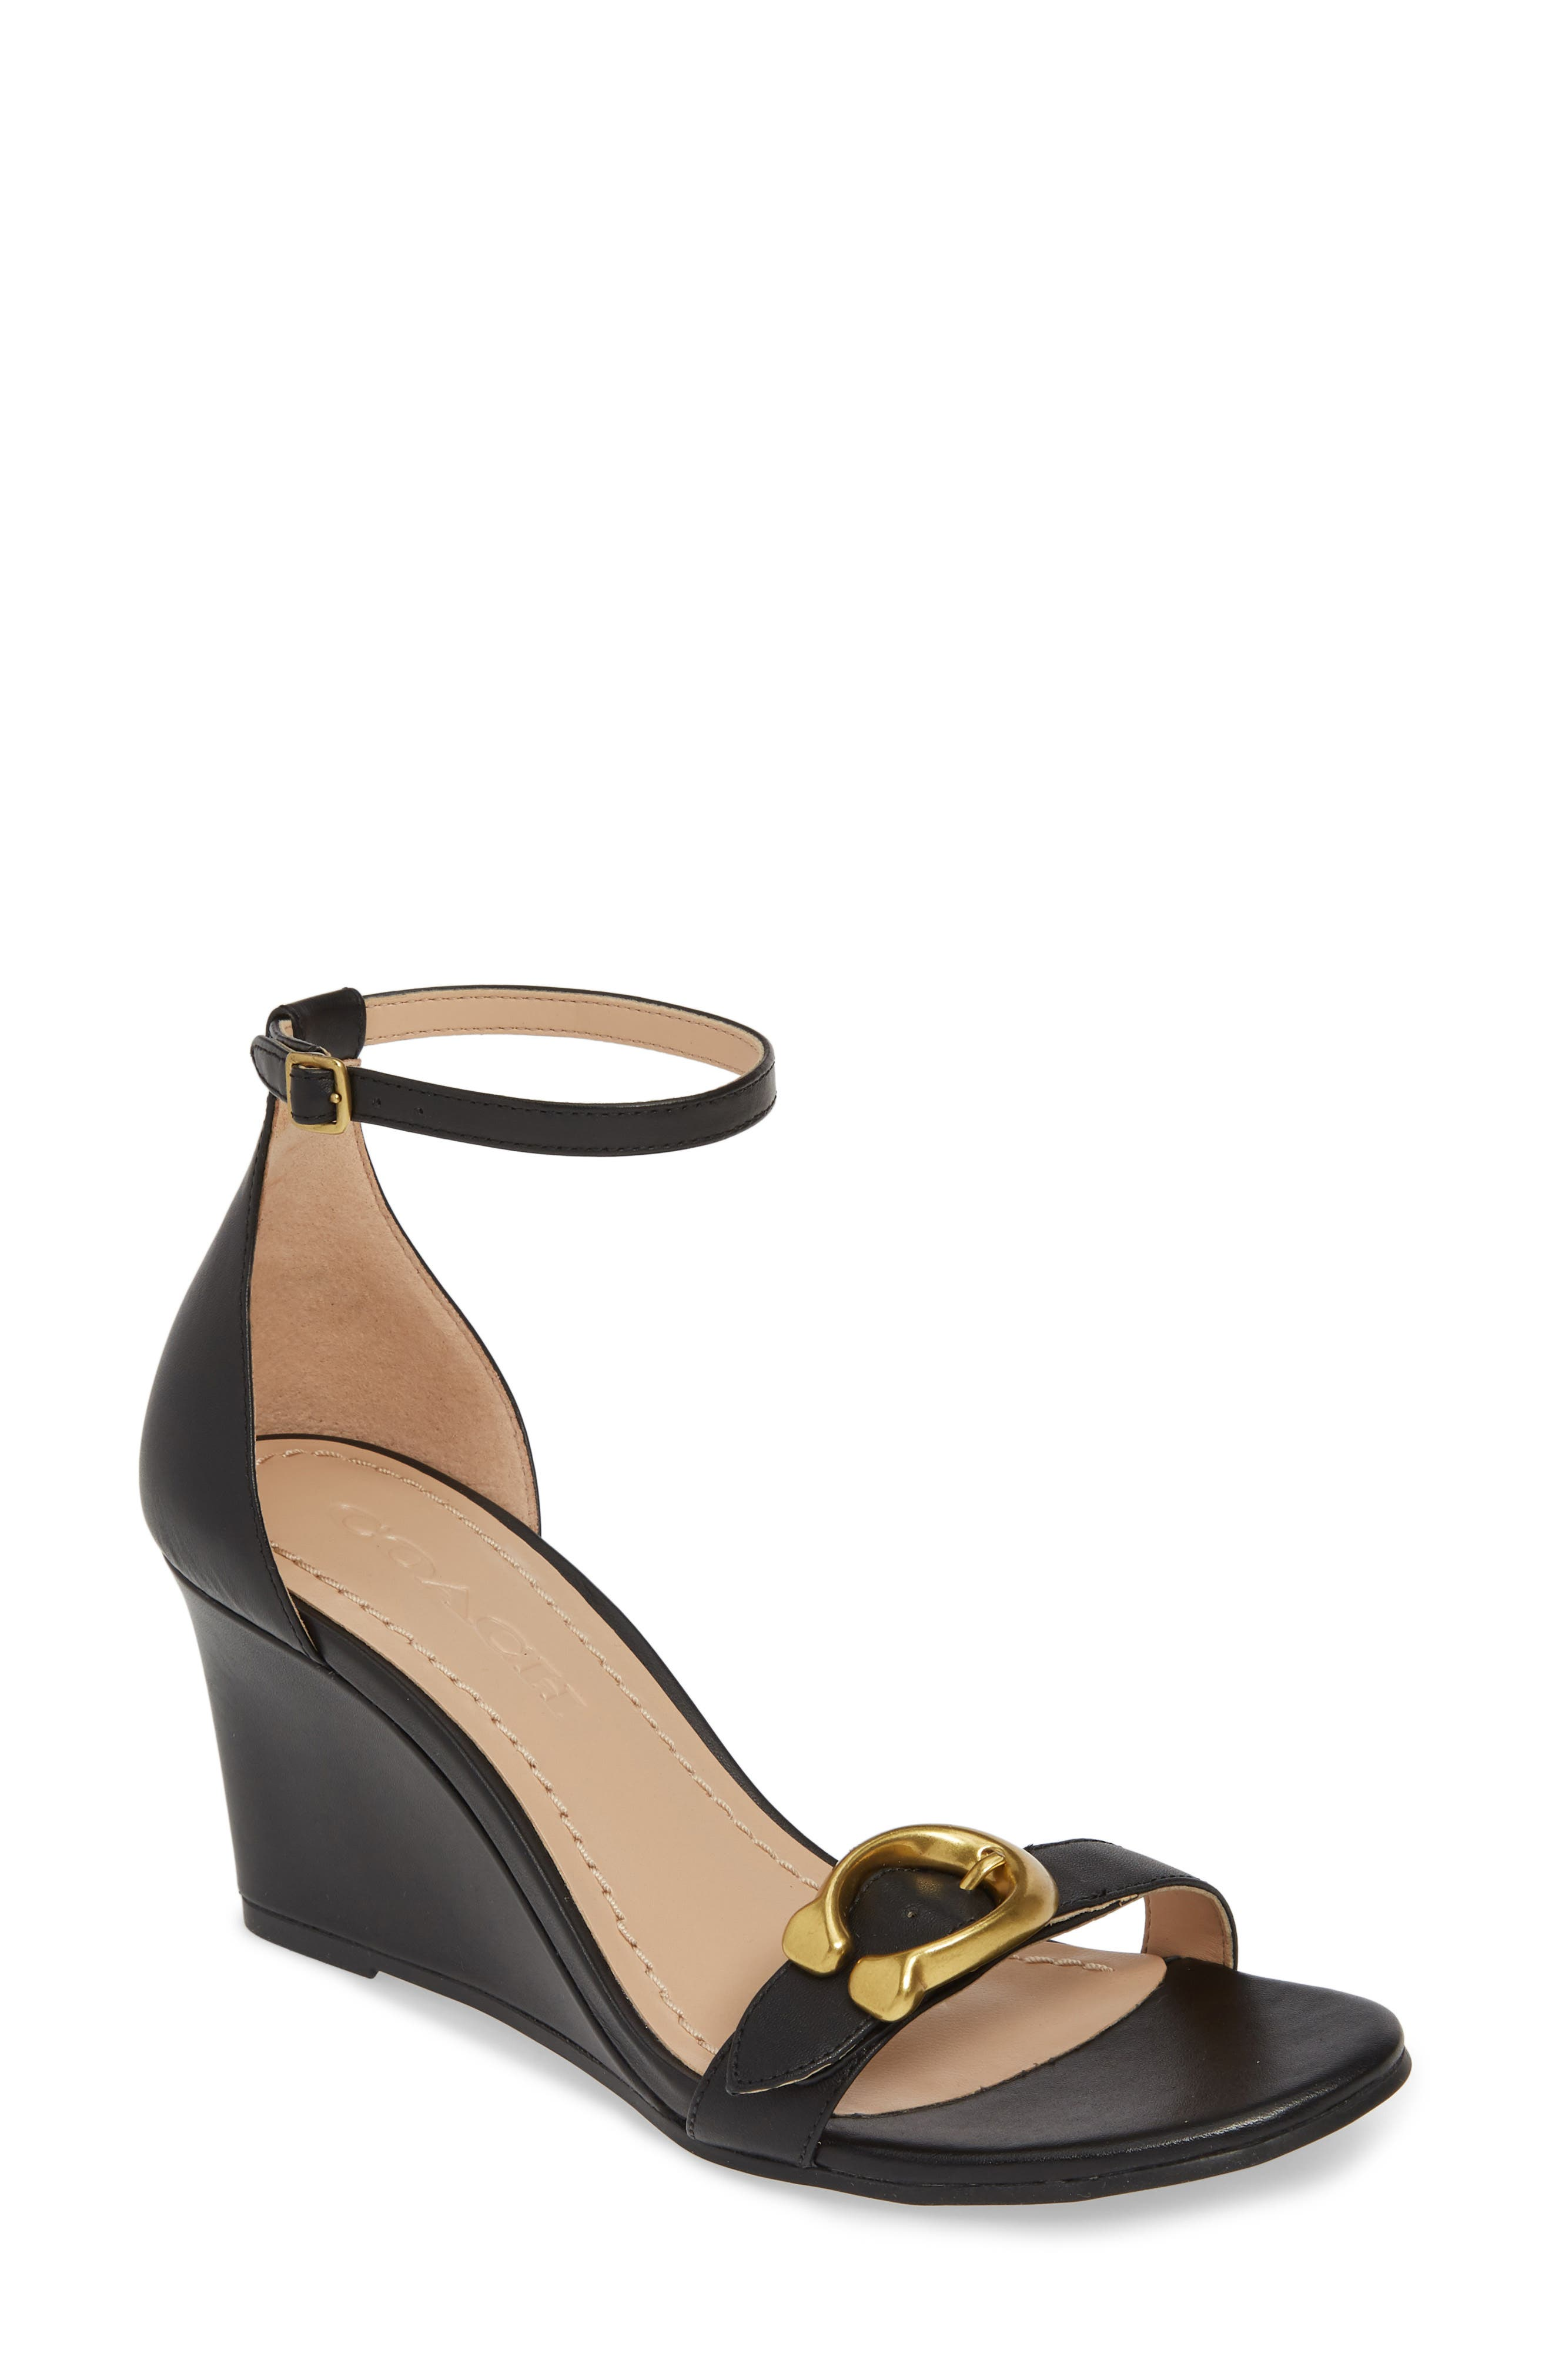 COACH, Odetta Wedge Ankle Strap Sandal, Main thumbnail 1, color, BLACK LEATHER